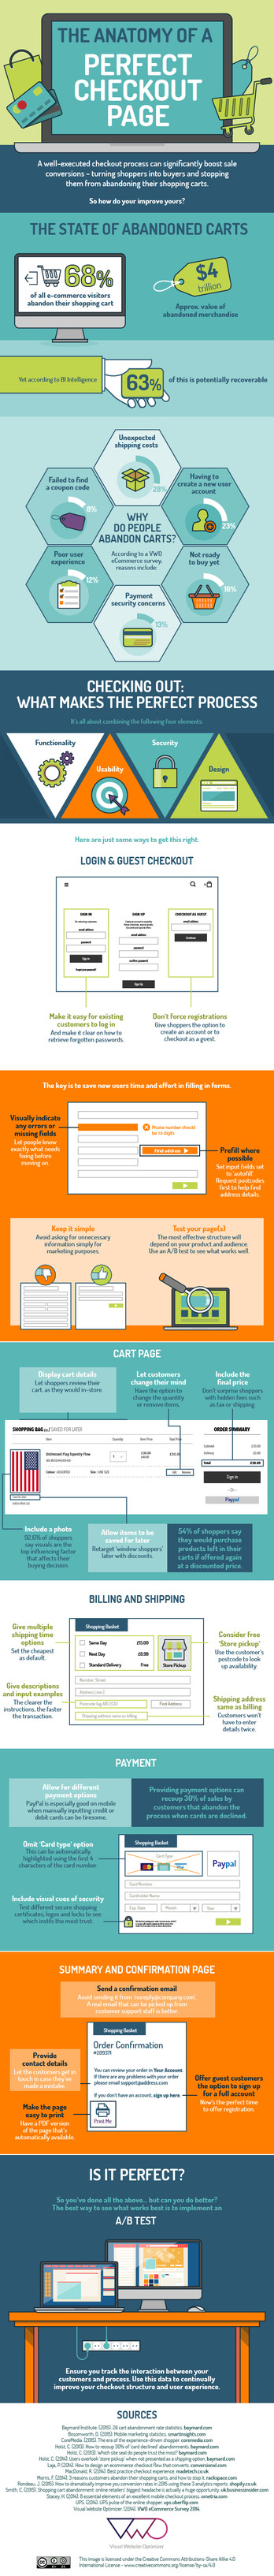 The Anatomy of a Perfect Checkout Page [Infographic]